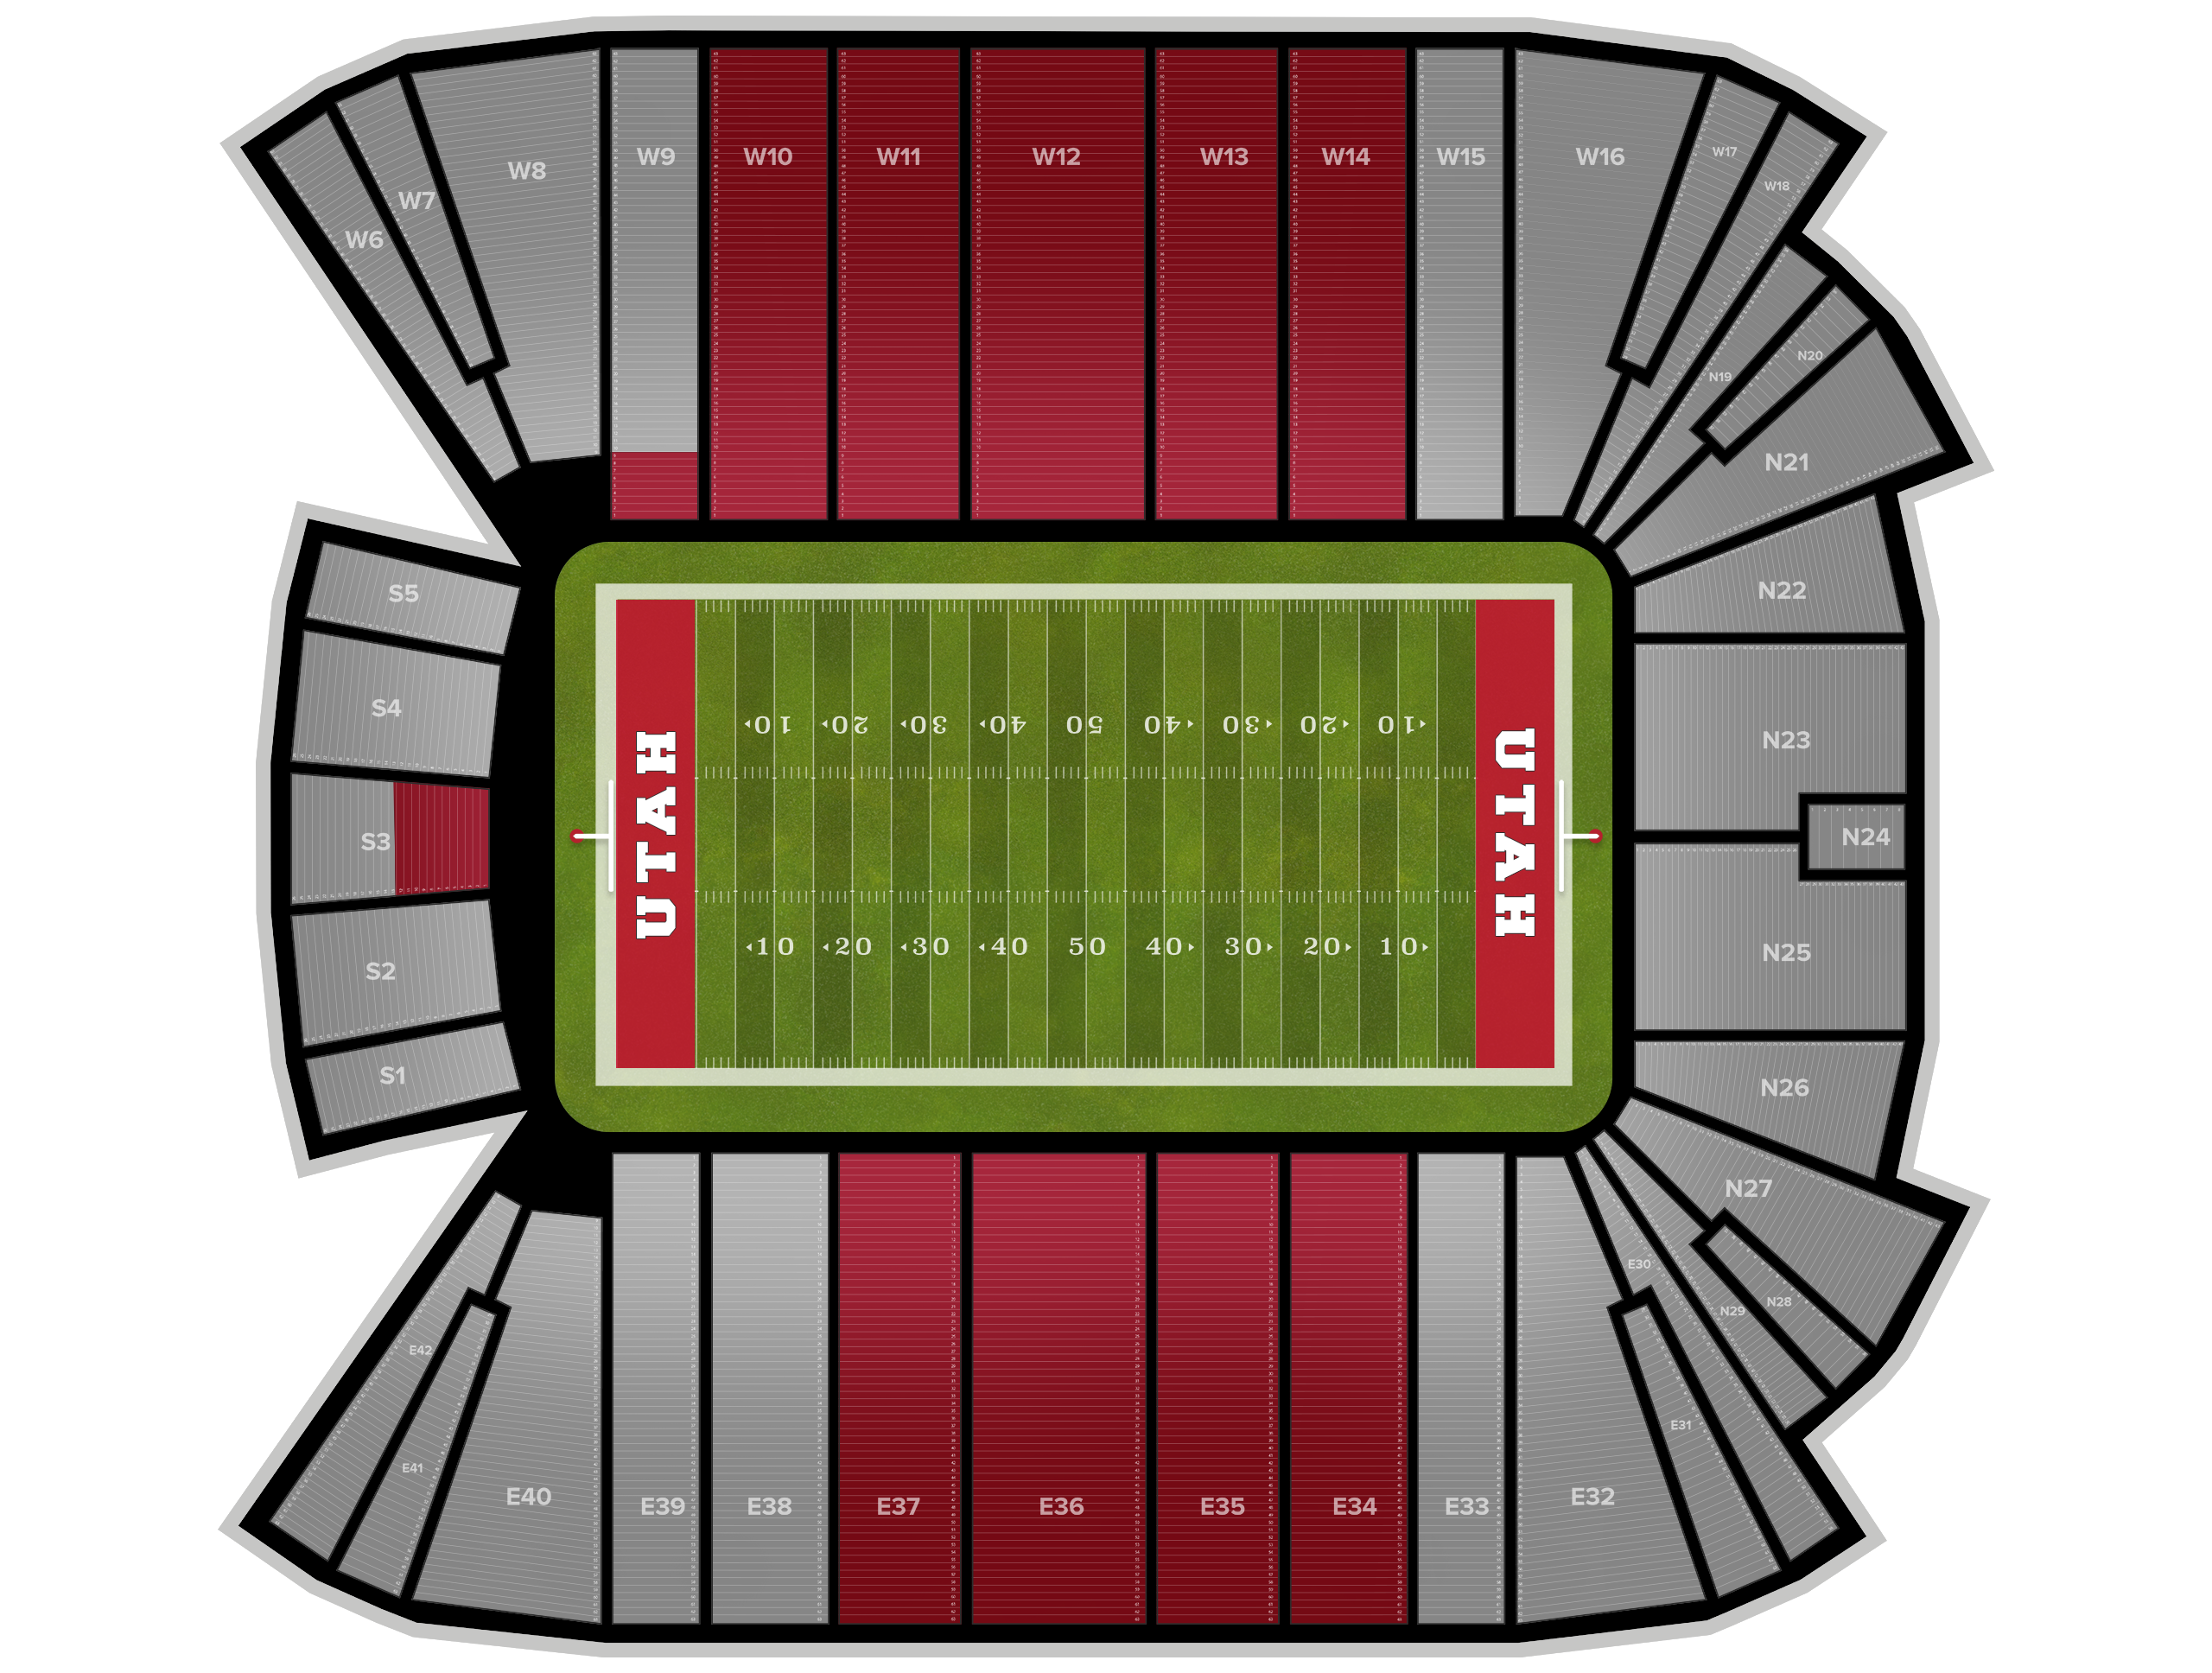 Rice-Eccles Stadium Tickets